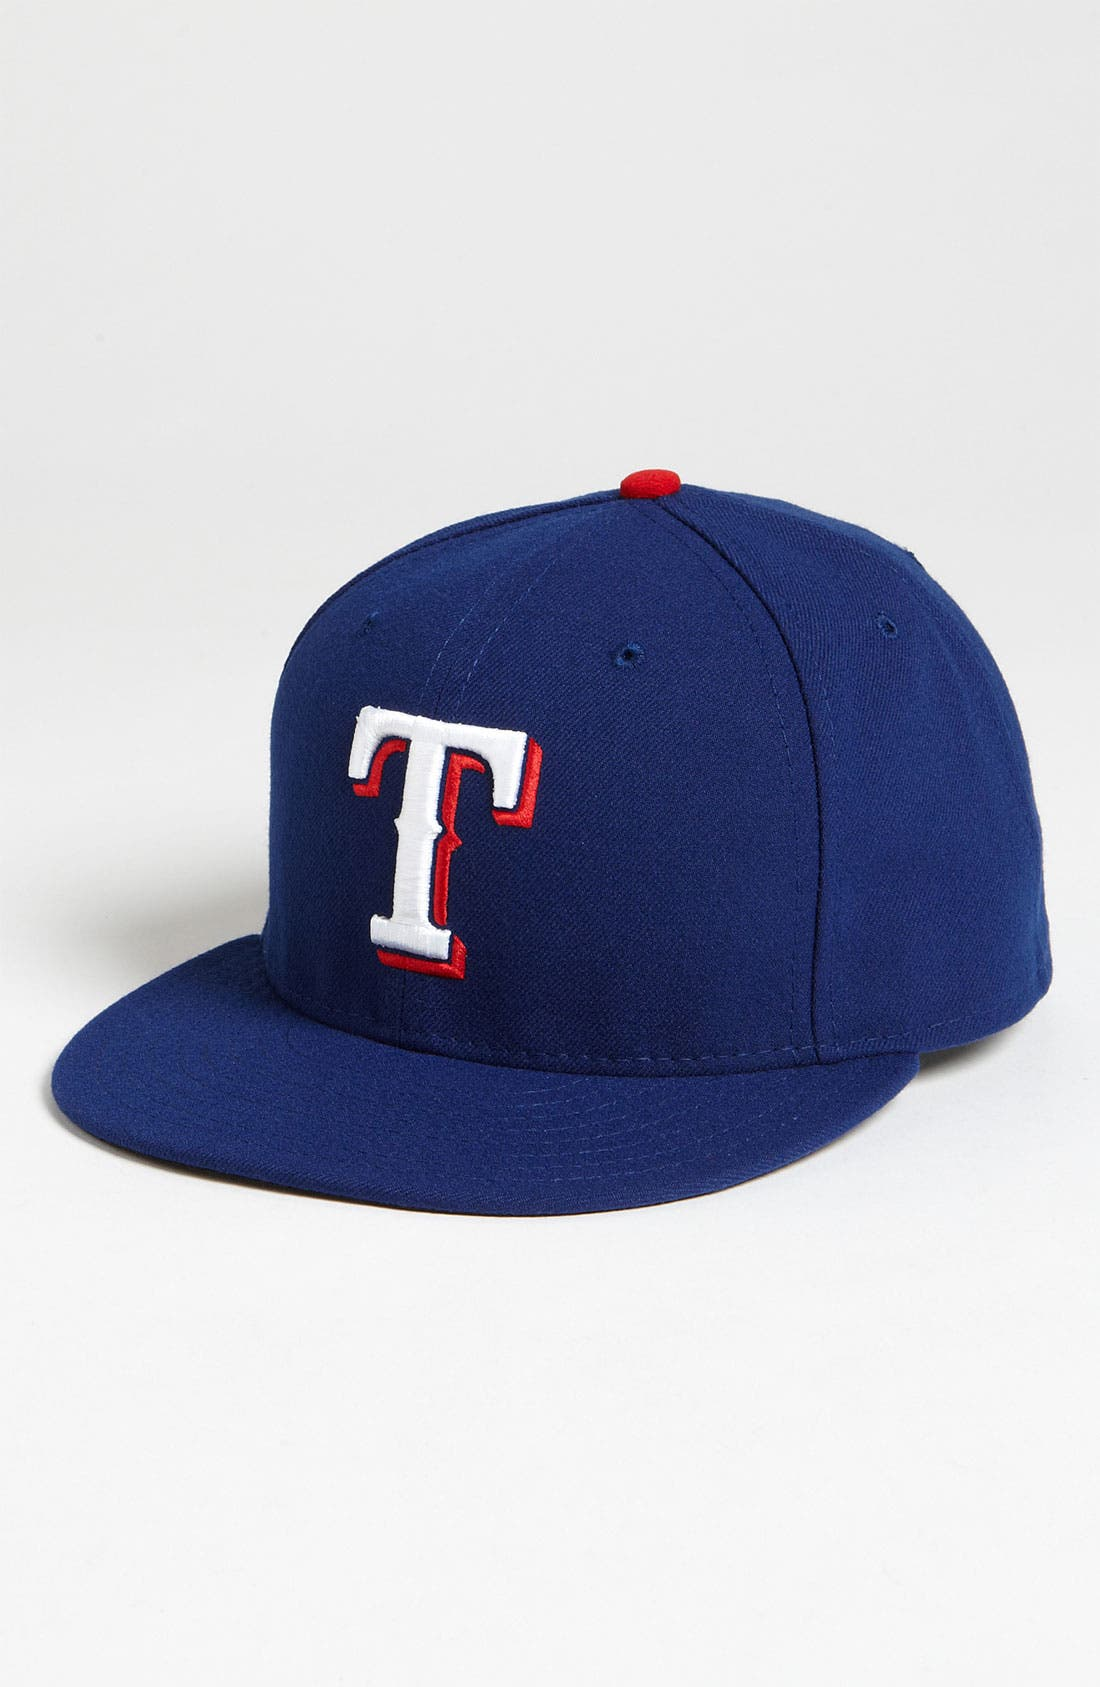 Alternate Image 1 Selected - New Era Cap 'Texas Rangers' Baseball Cap